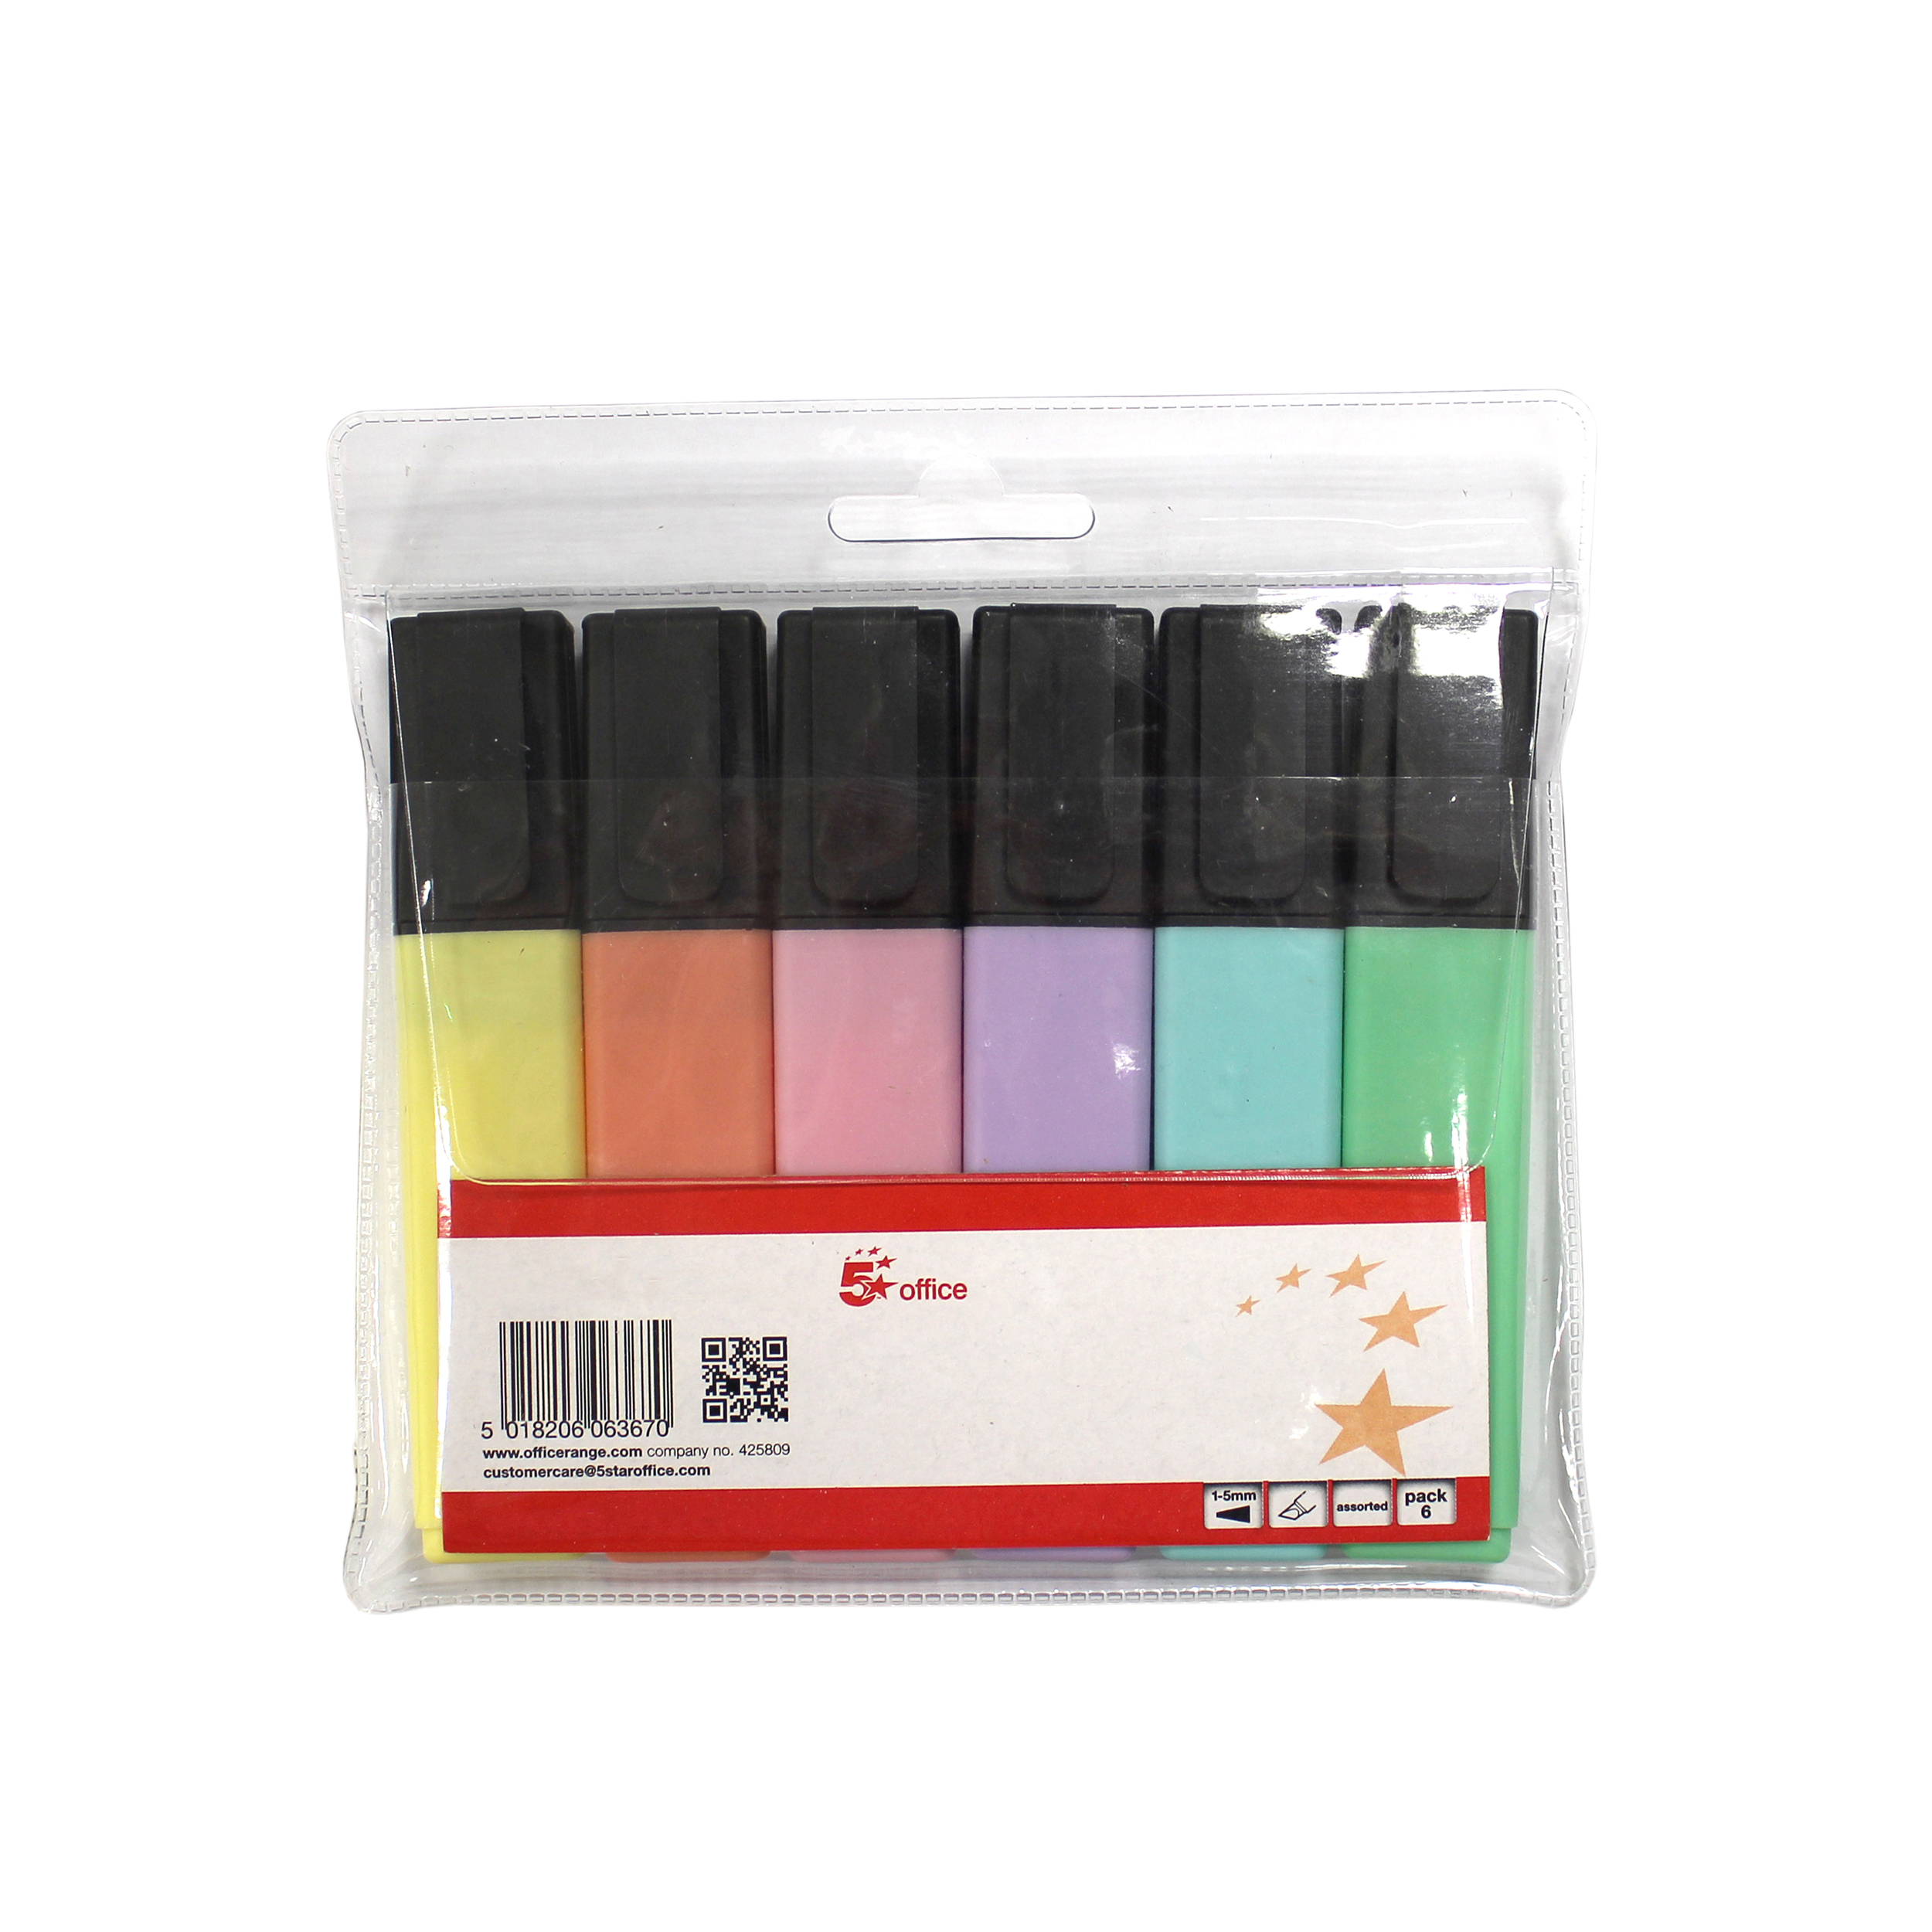 Highlighters 5 Star Office Pastel Highlighters Assorted Pack 6